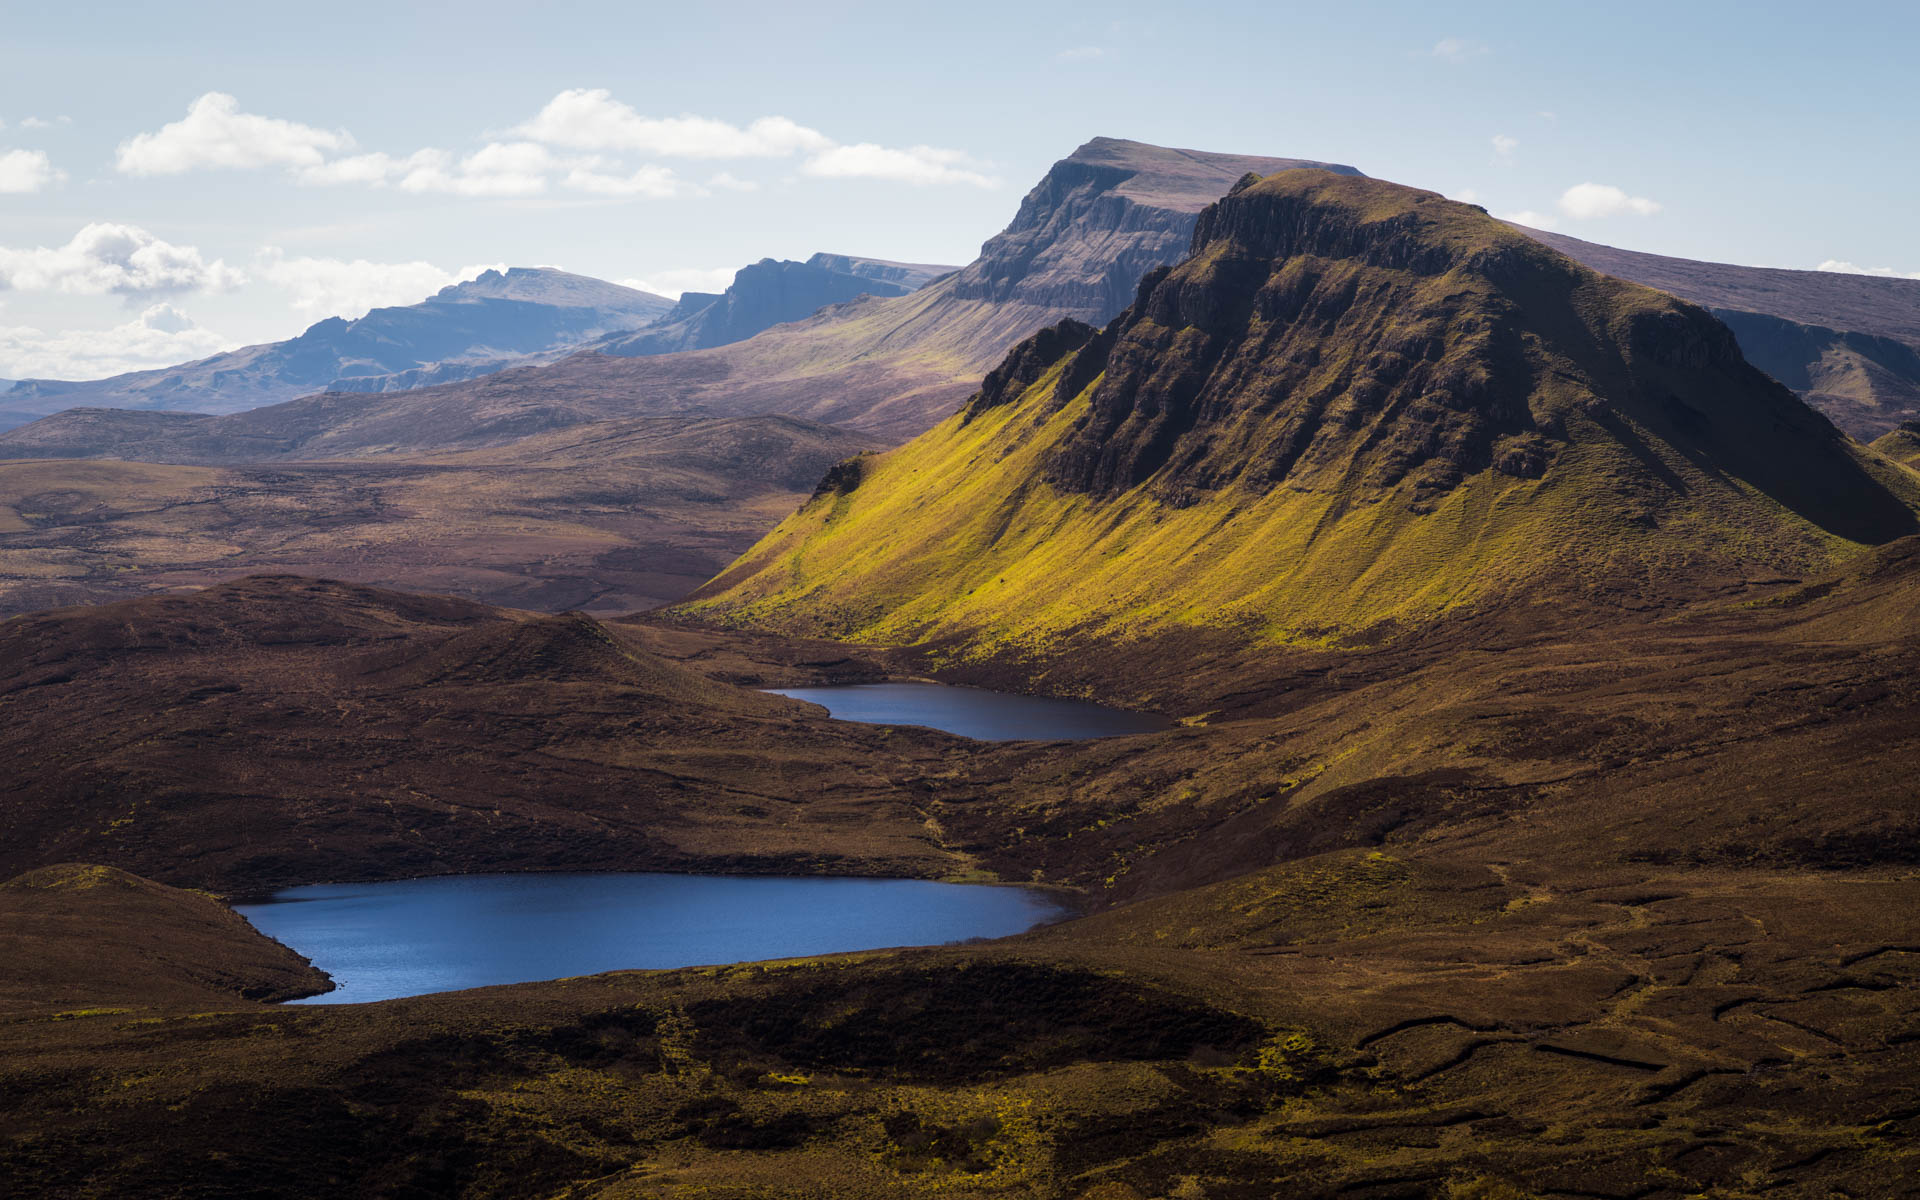 Blue Sky over the Quiraing Mountains - Isle of Skye Photo Spot